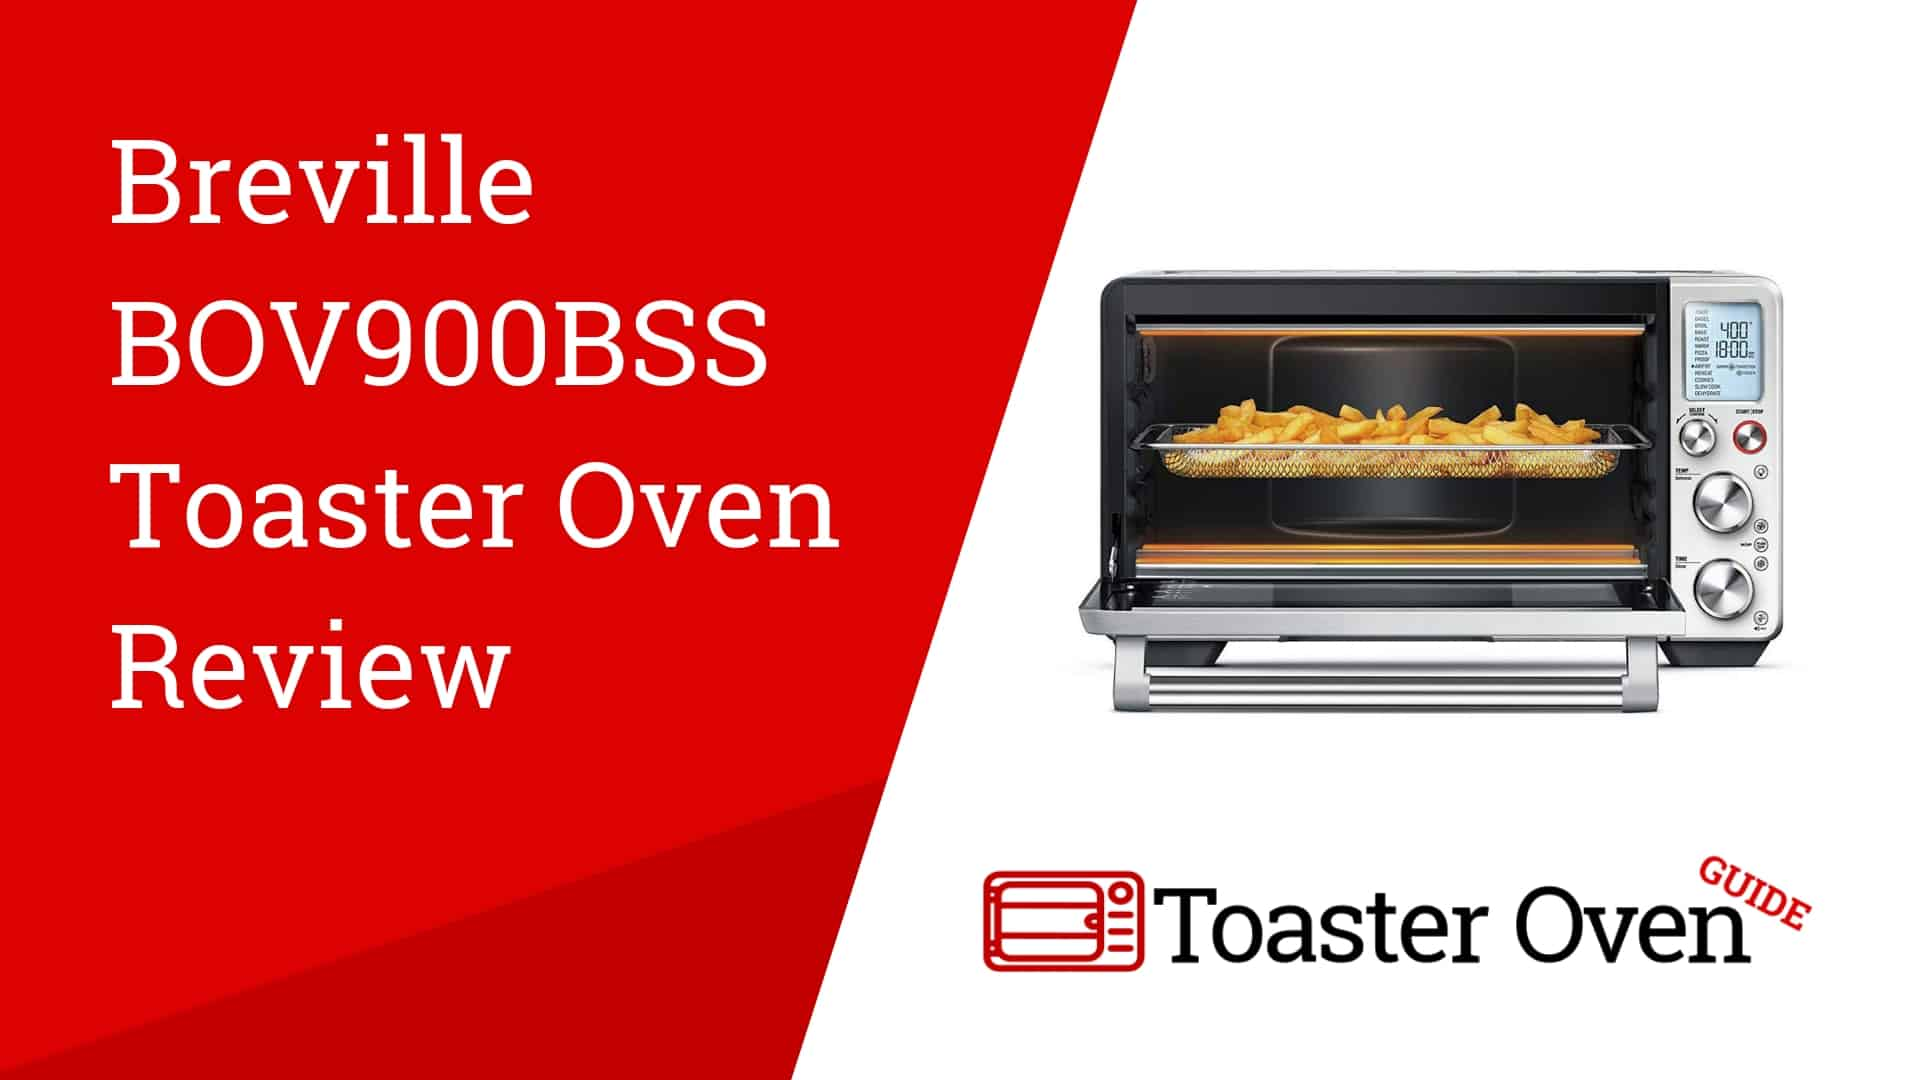 Breville Bov900bss Smart Oven Air Toaster Review Toaster